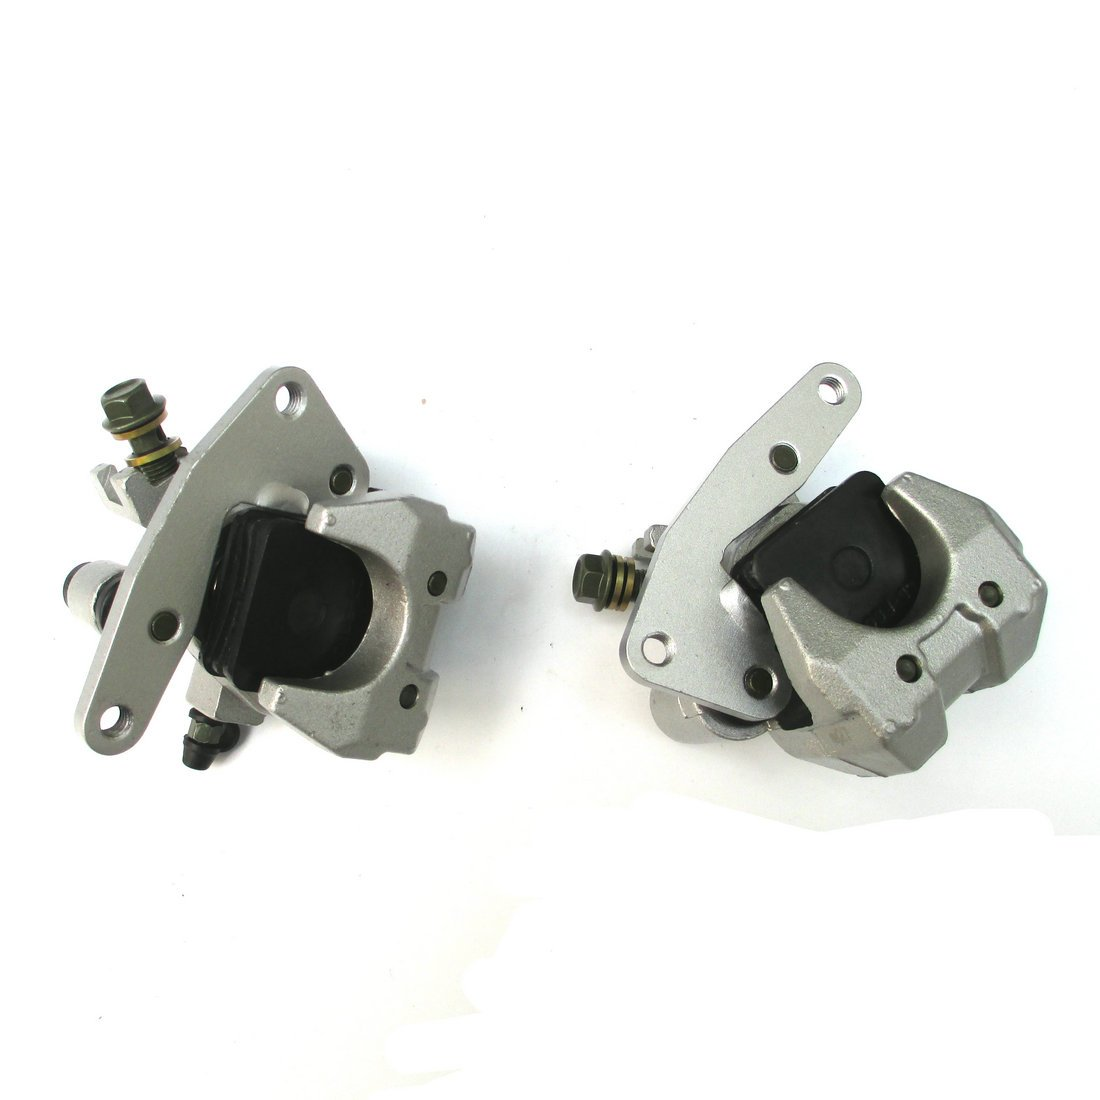 New Front Brake Caliper Set for YAMAHA RAPTOR KODIAK WOLVERINE YFM350 400 45 660 NEW by WADS1000292 (Image #2)